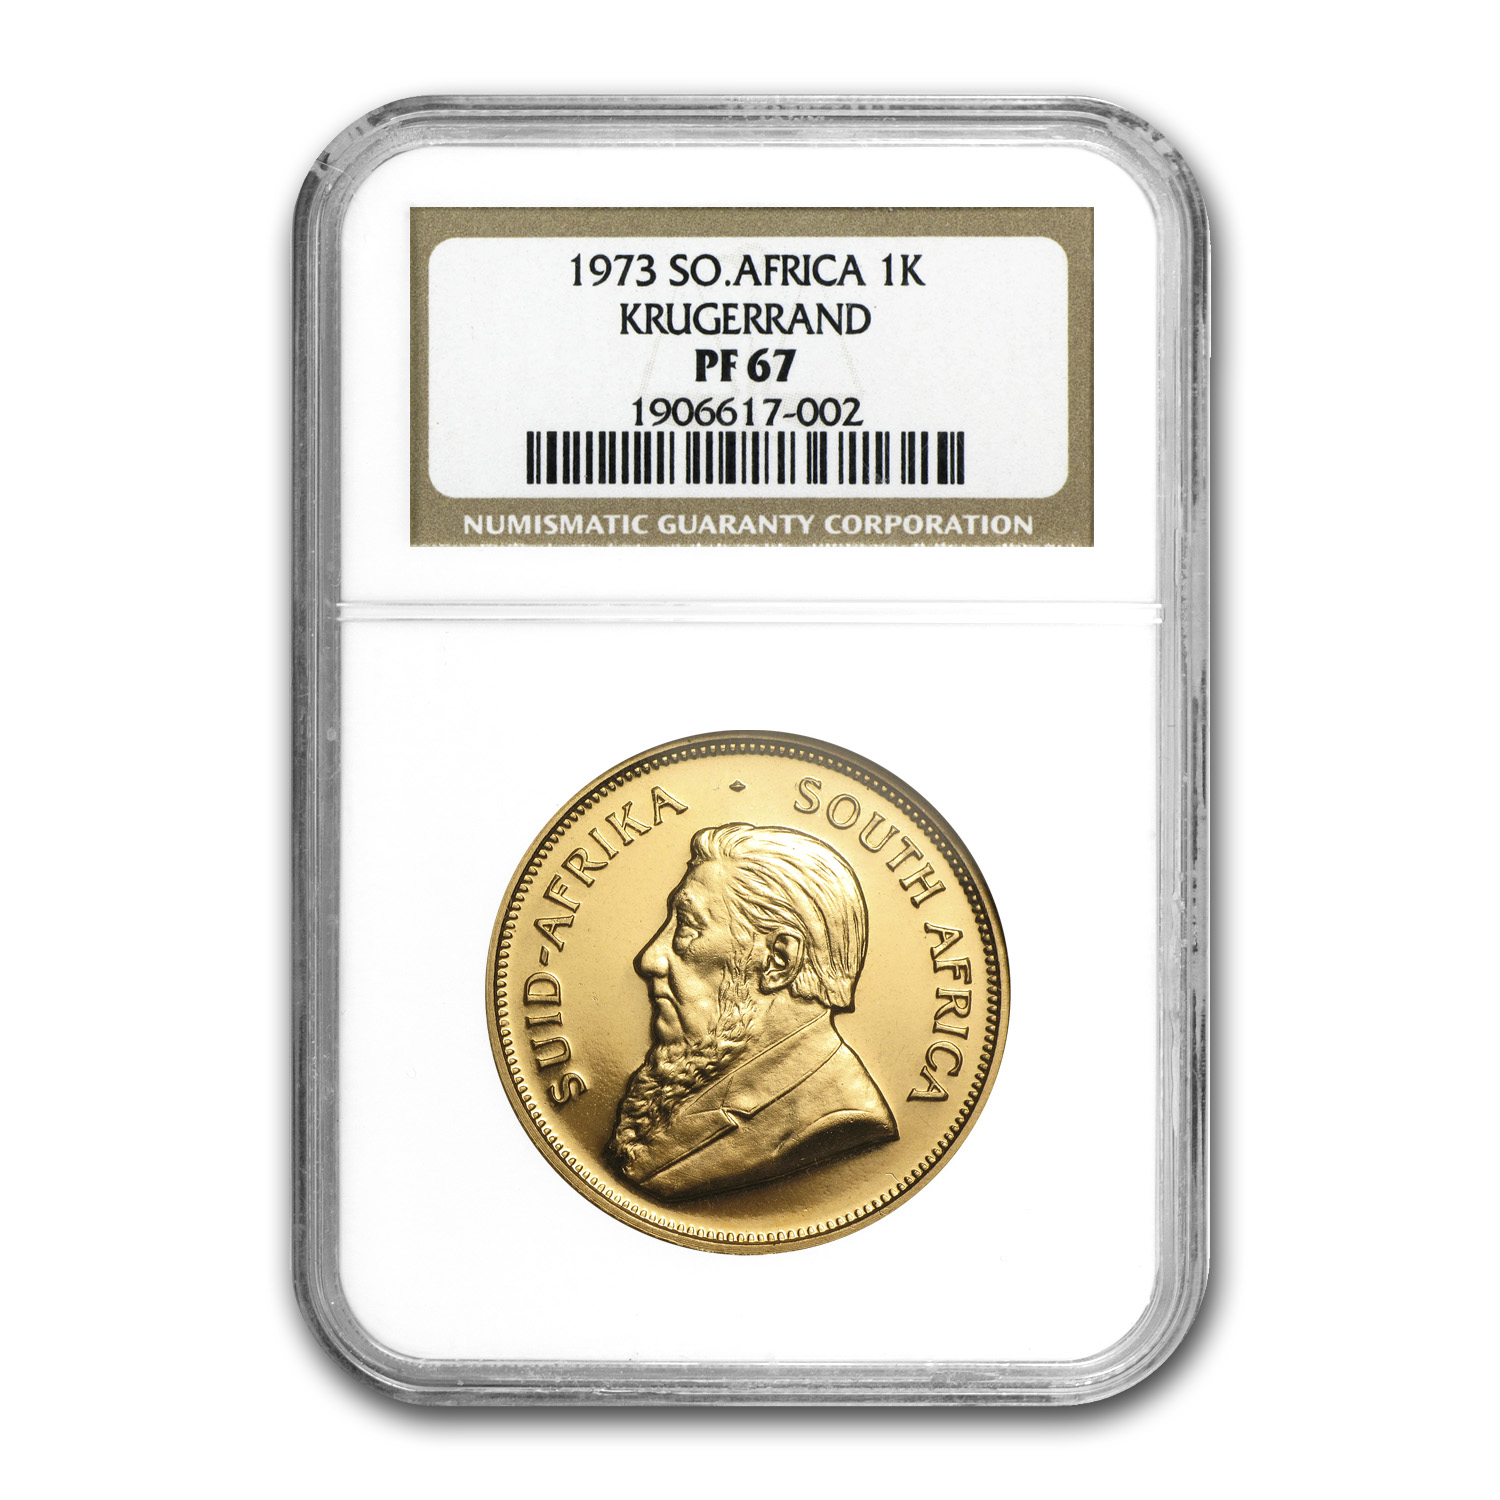 1973 South Africa 1 oz Gold Krugerrand PF-67 NGC